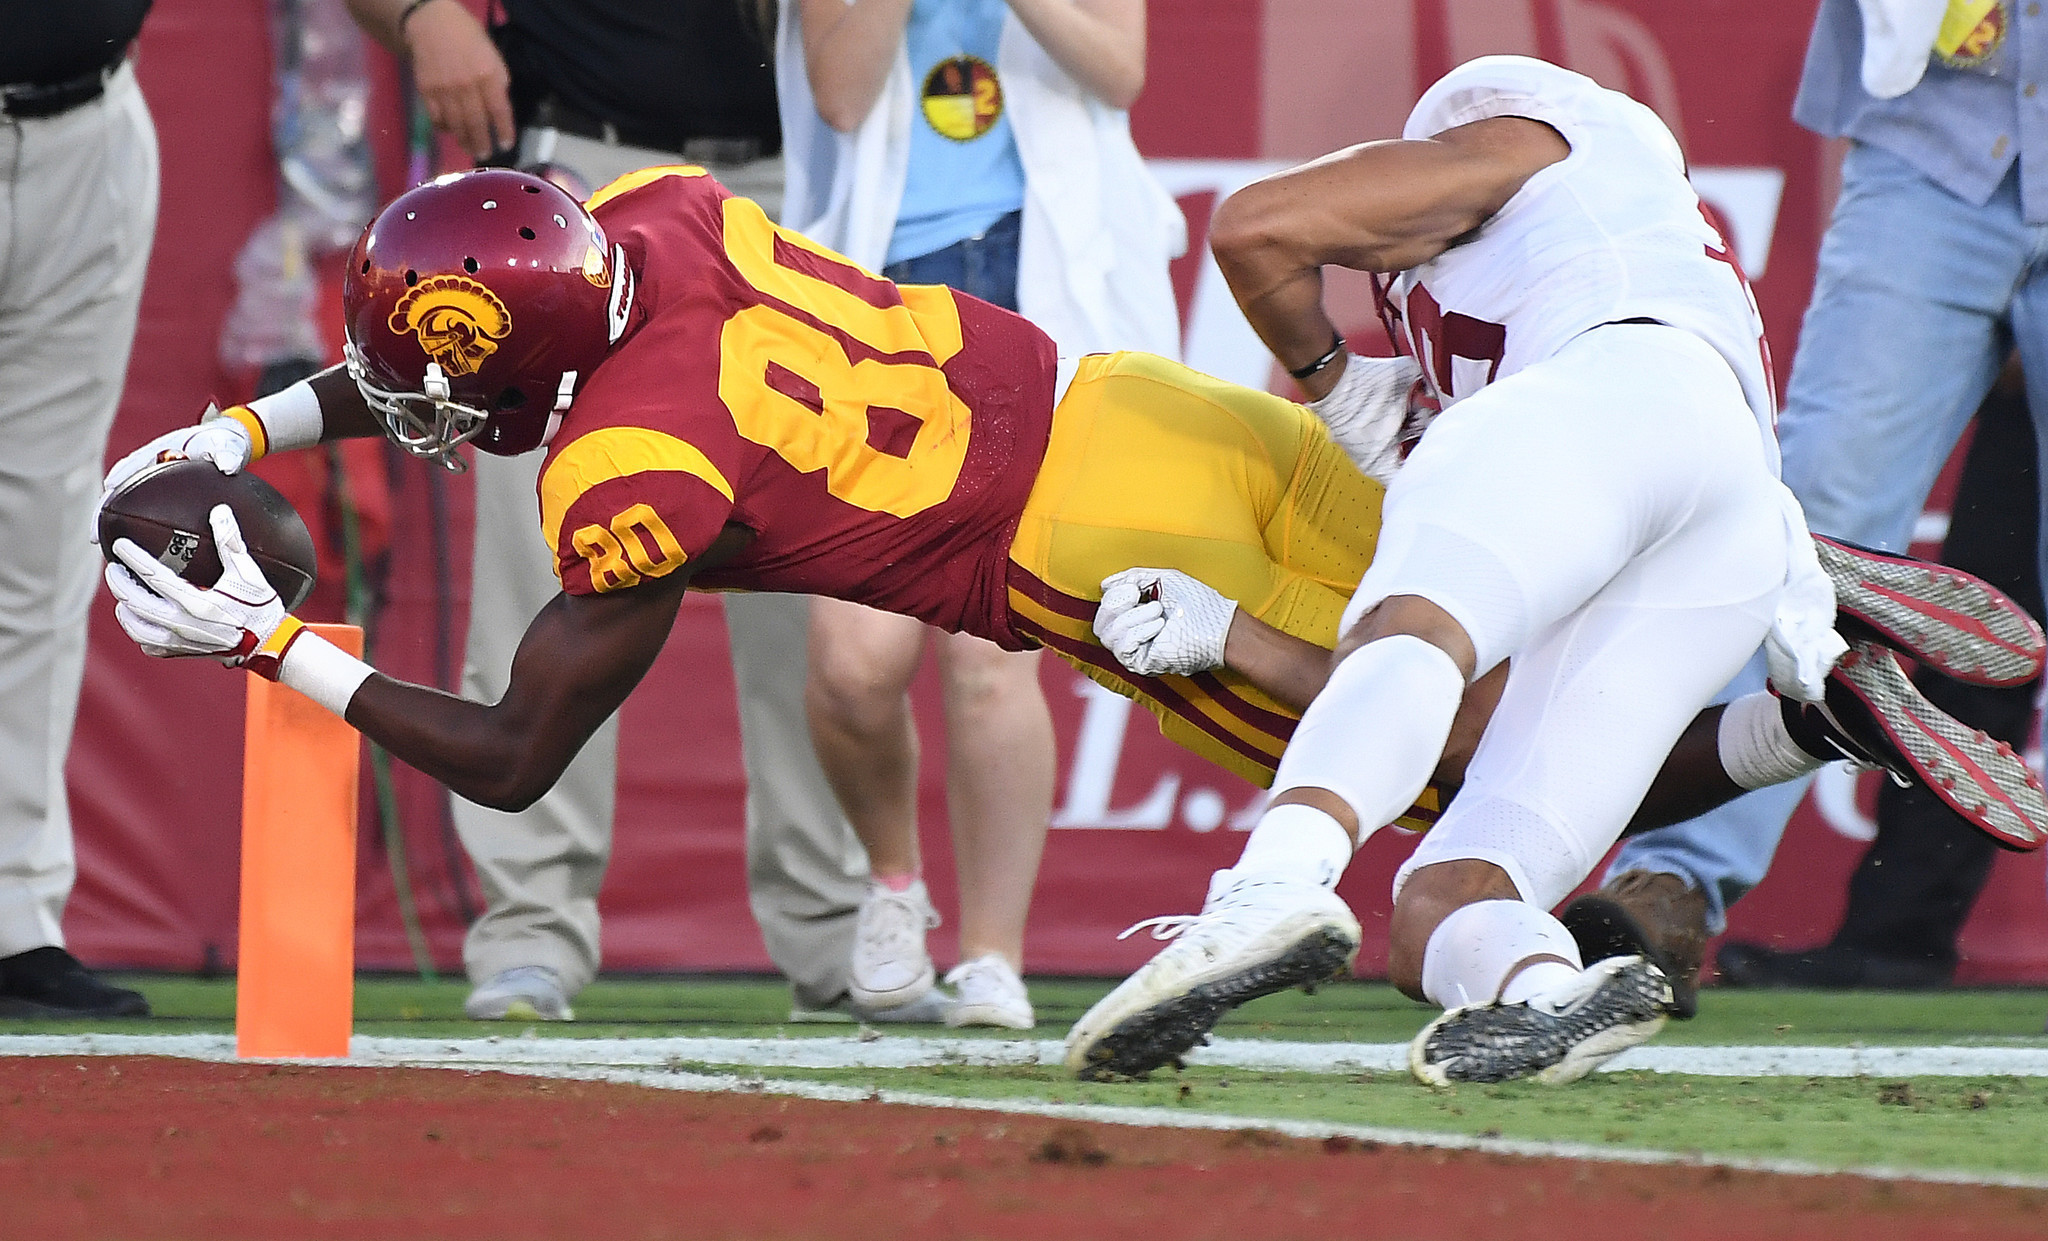 La-sp-usc-vs-stanford-20170909-photos